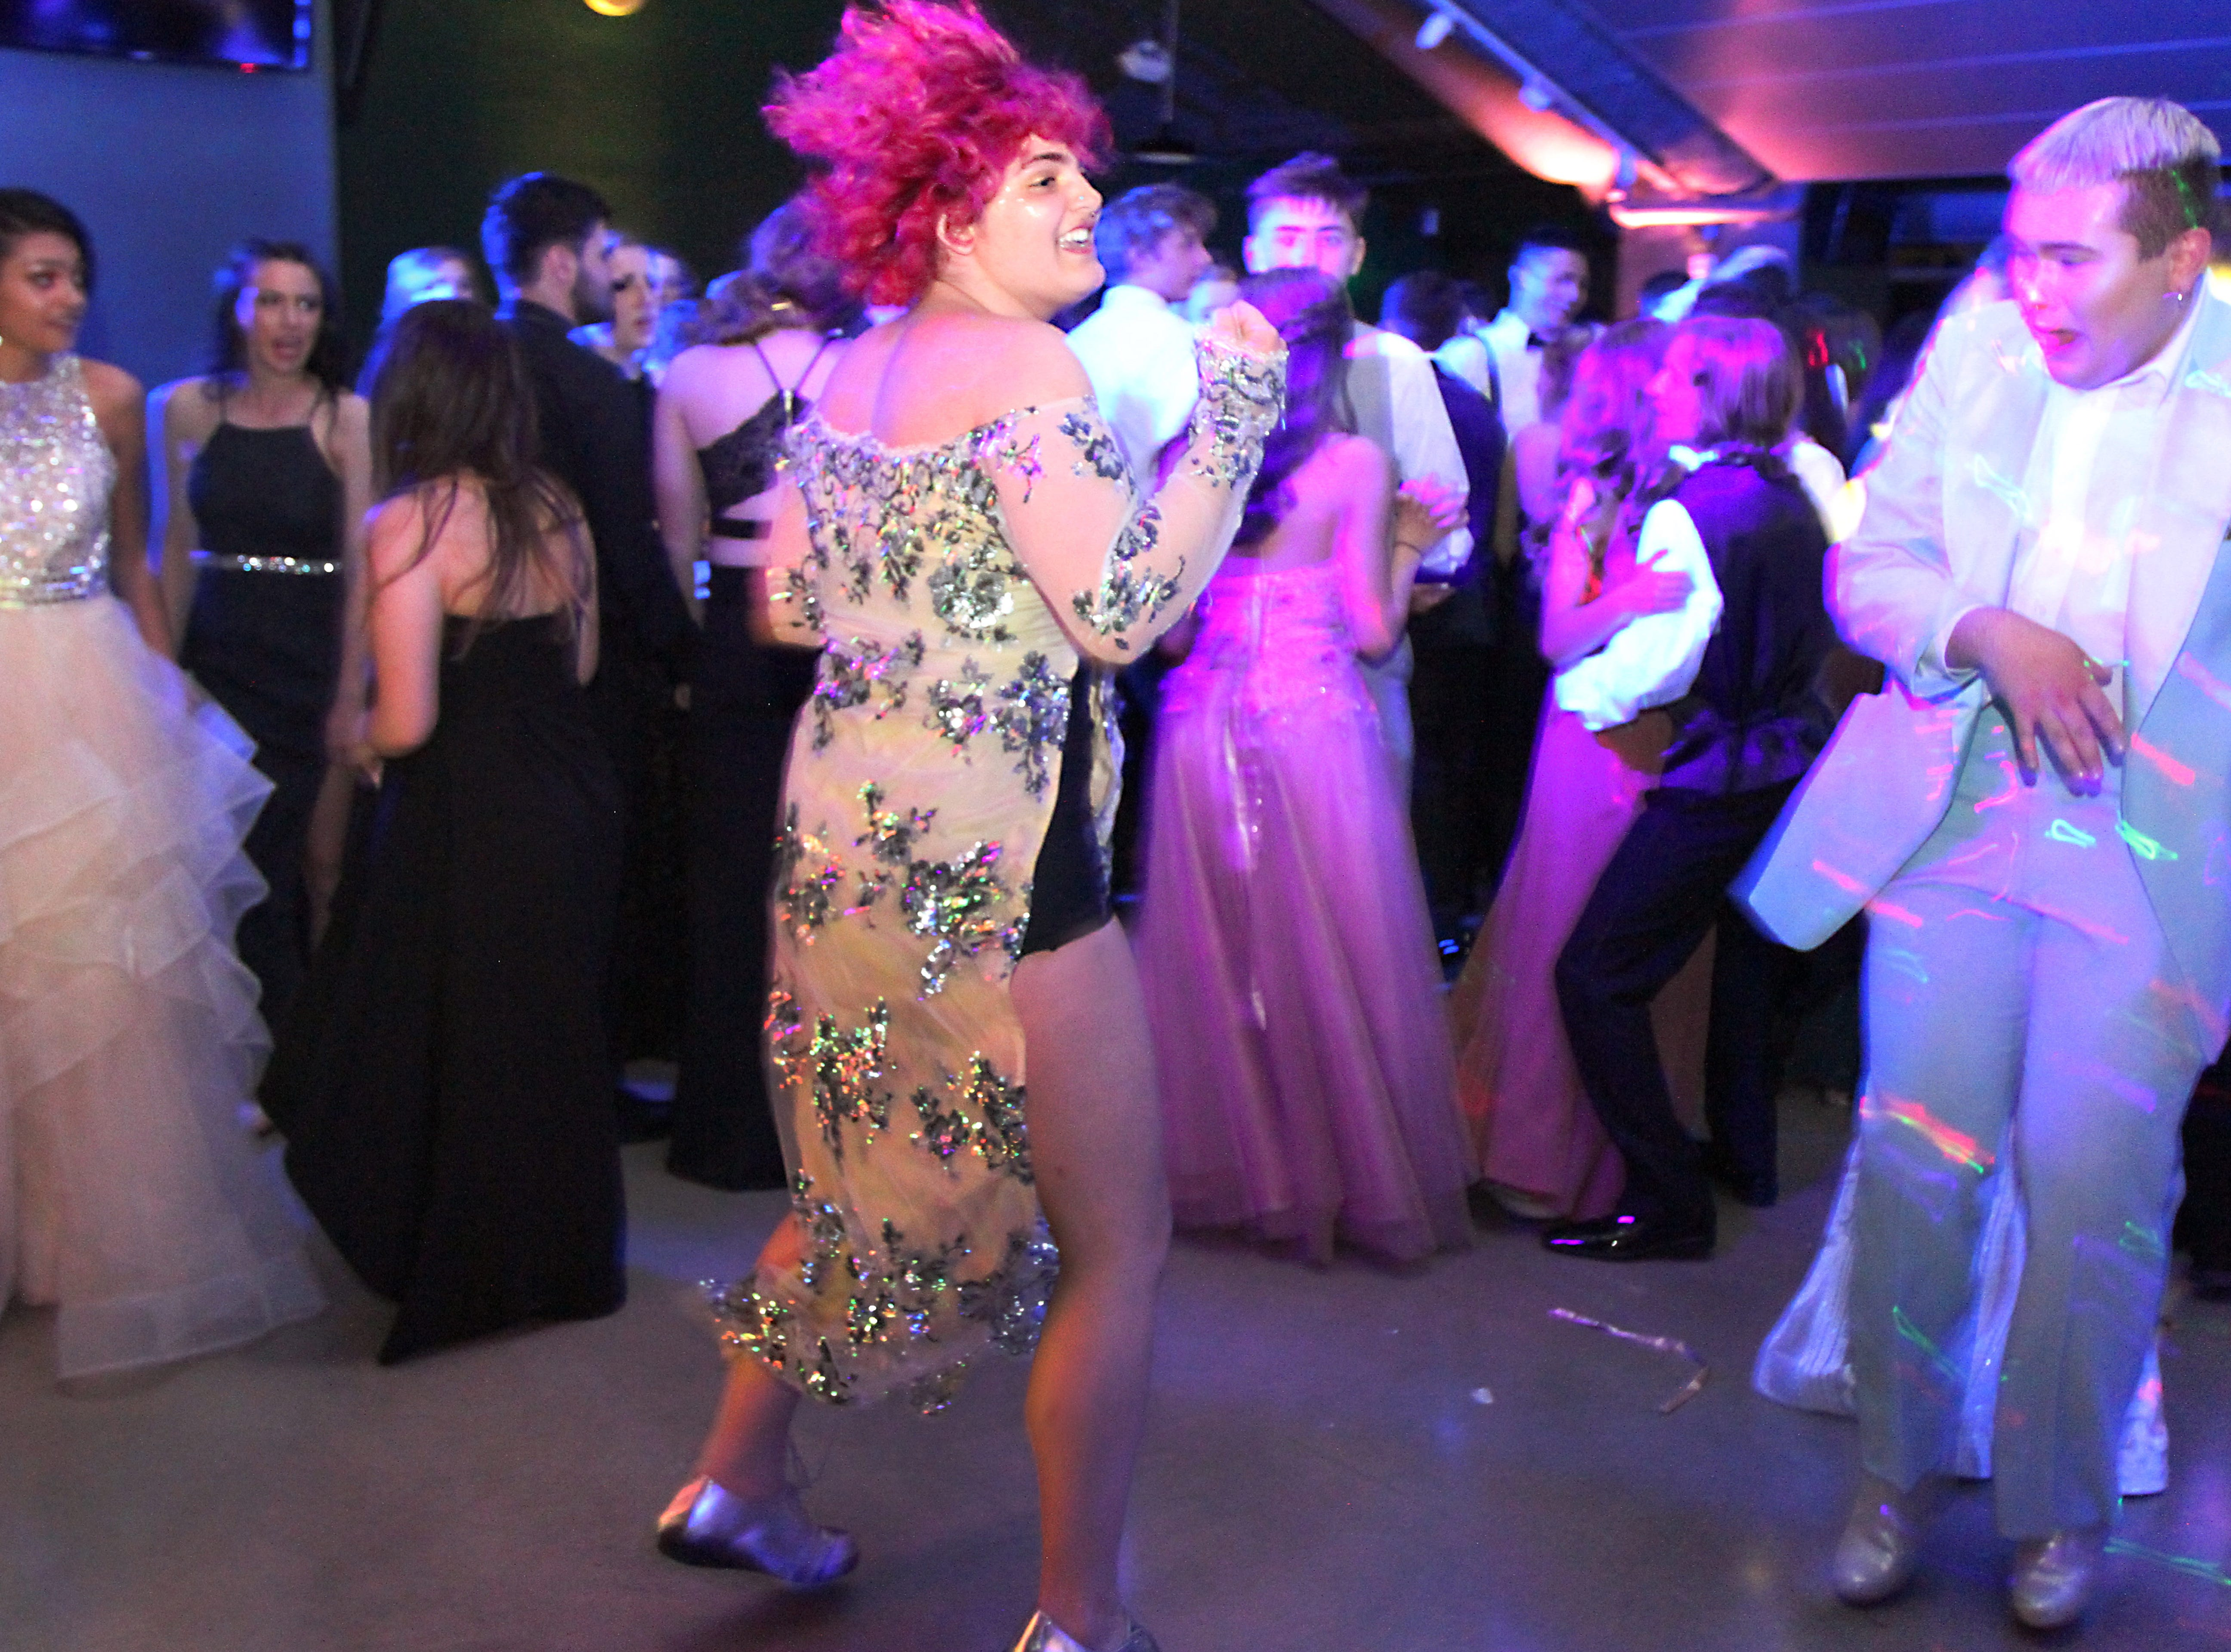 Joel Blocker / For the Coloradoan Gabrielle Herzman, middle, gets her groove on, while Zach Leerssen, right, looks on during the Fort Collins High School prom held at Canvas stadium Saturday night.